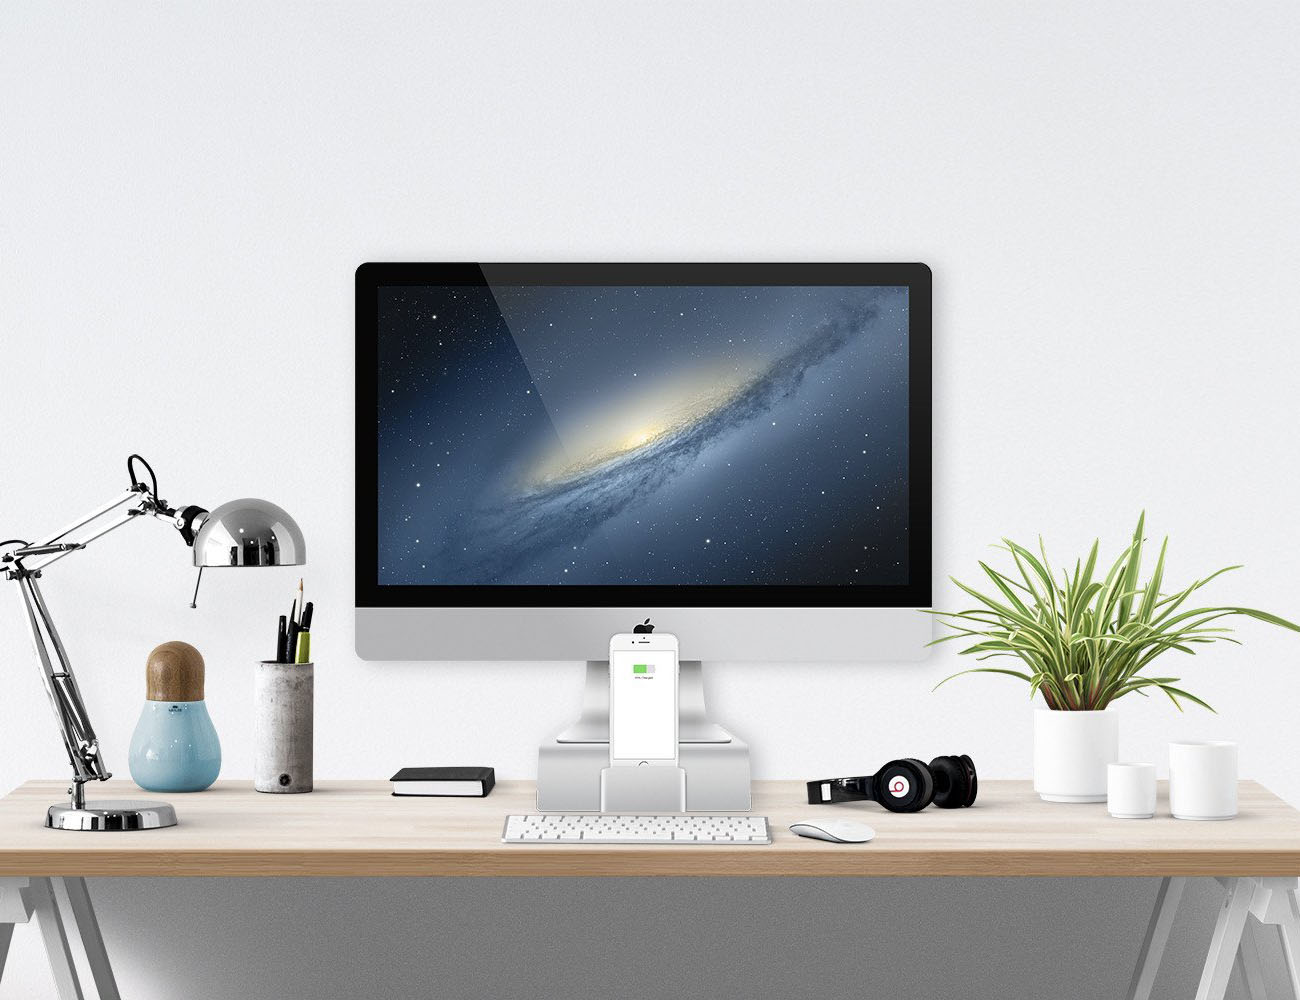 FUSION+Stand%3A+A+Superb+Elevating+%26amp%3B+Docking+Stand+For+IMacs+%26amp%3B+Apple+Displays